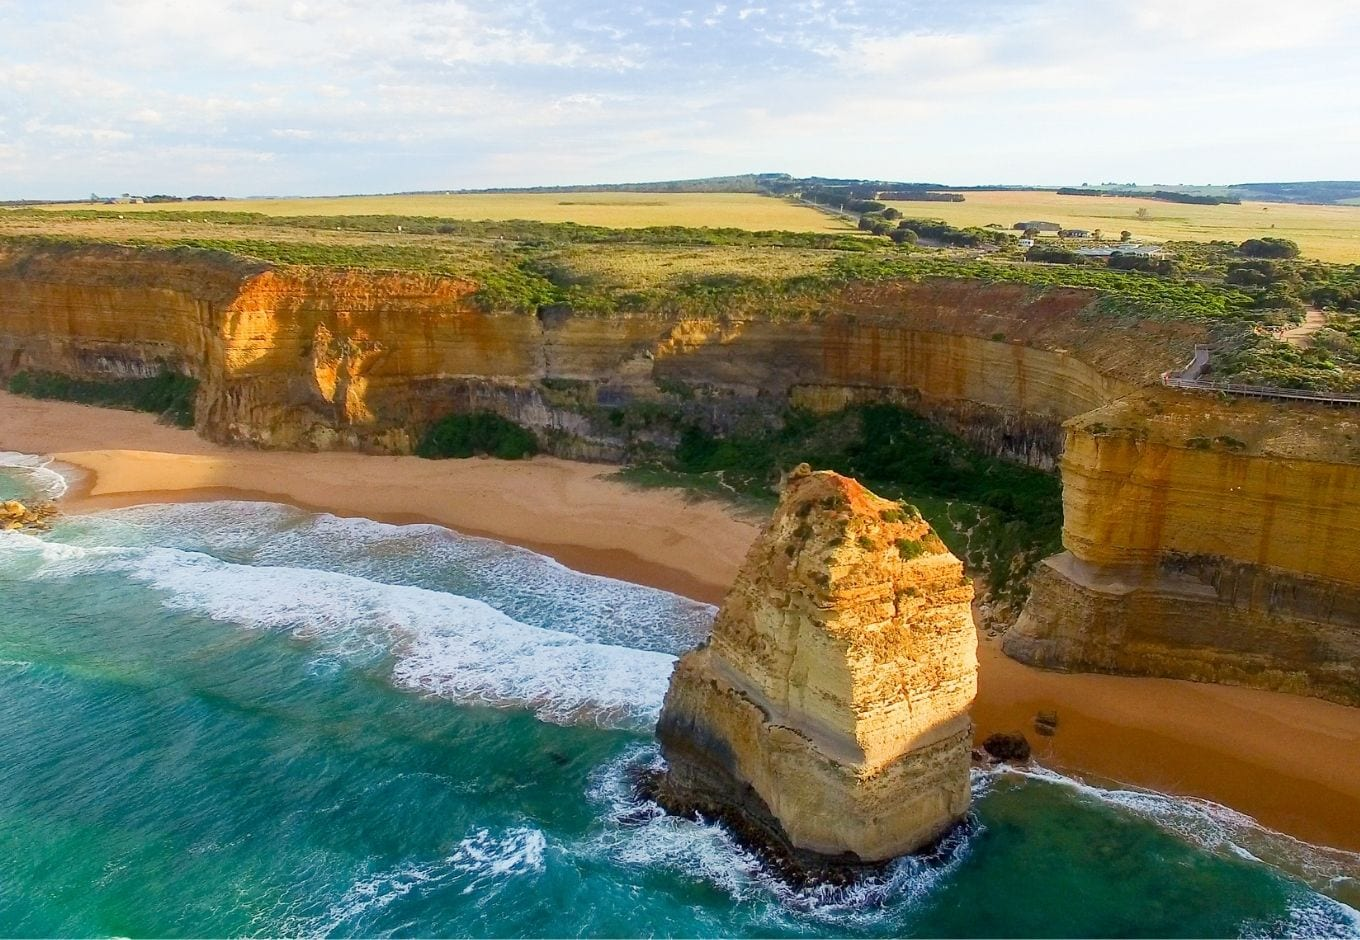 The turquoise ocean surrounded by cliffs on the Great Ocean Road, in Australia.